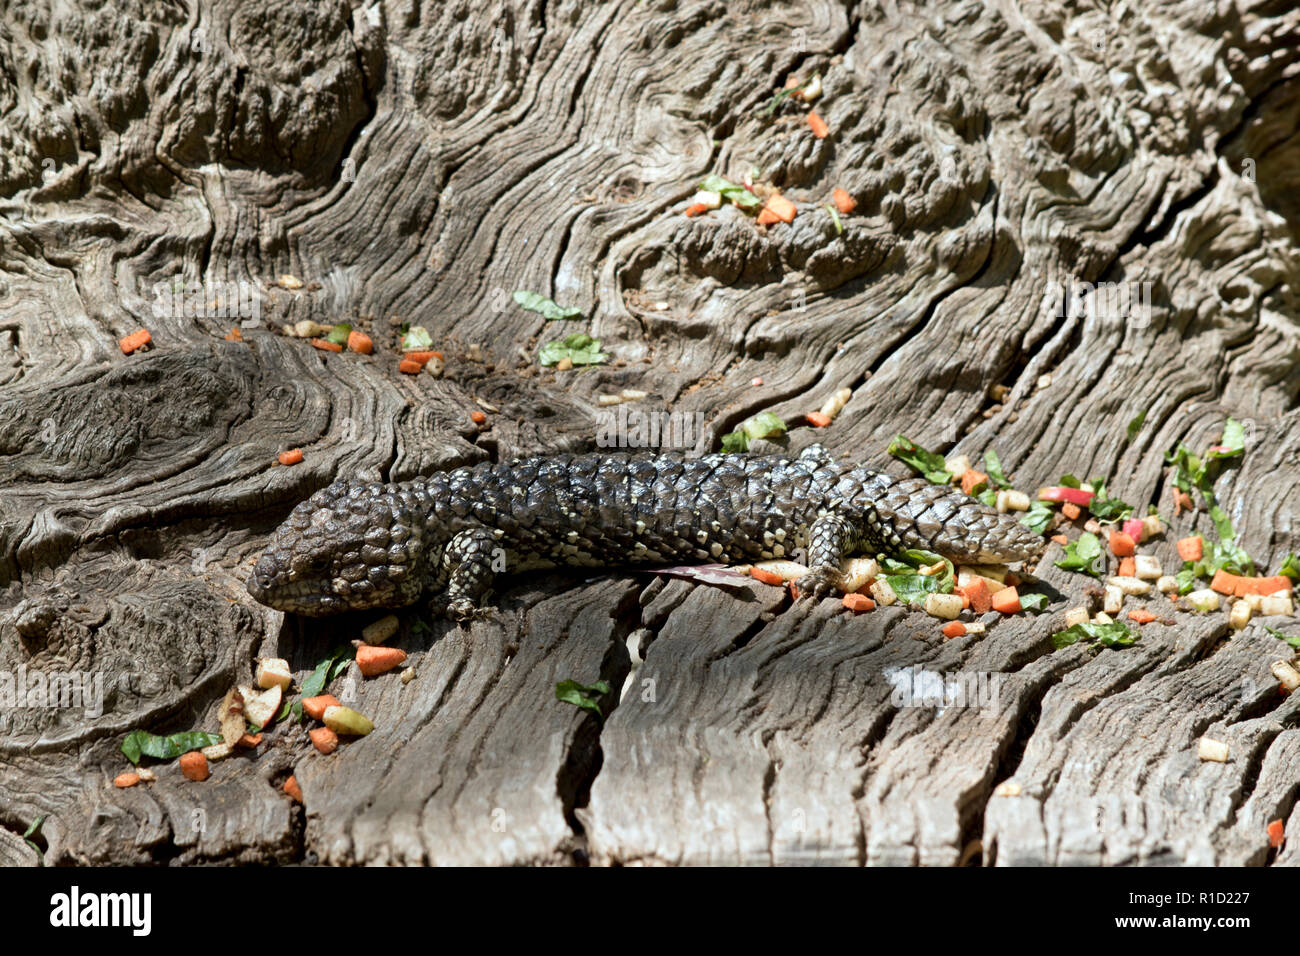 the shingle back lizard is hiding in plain sight it uses its natural camouflage to protect itself from its enemies - Stock Image